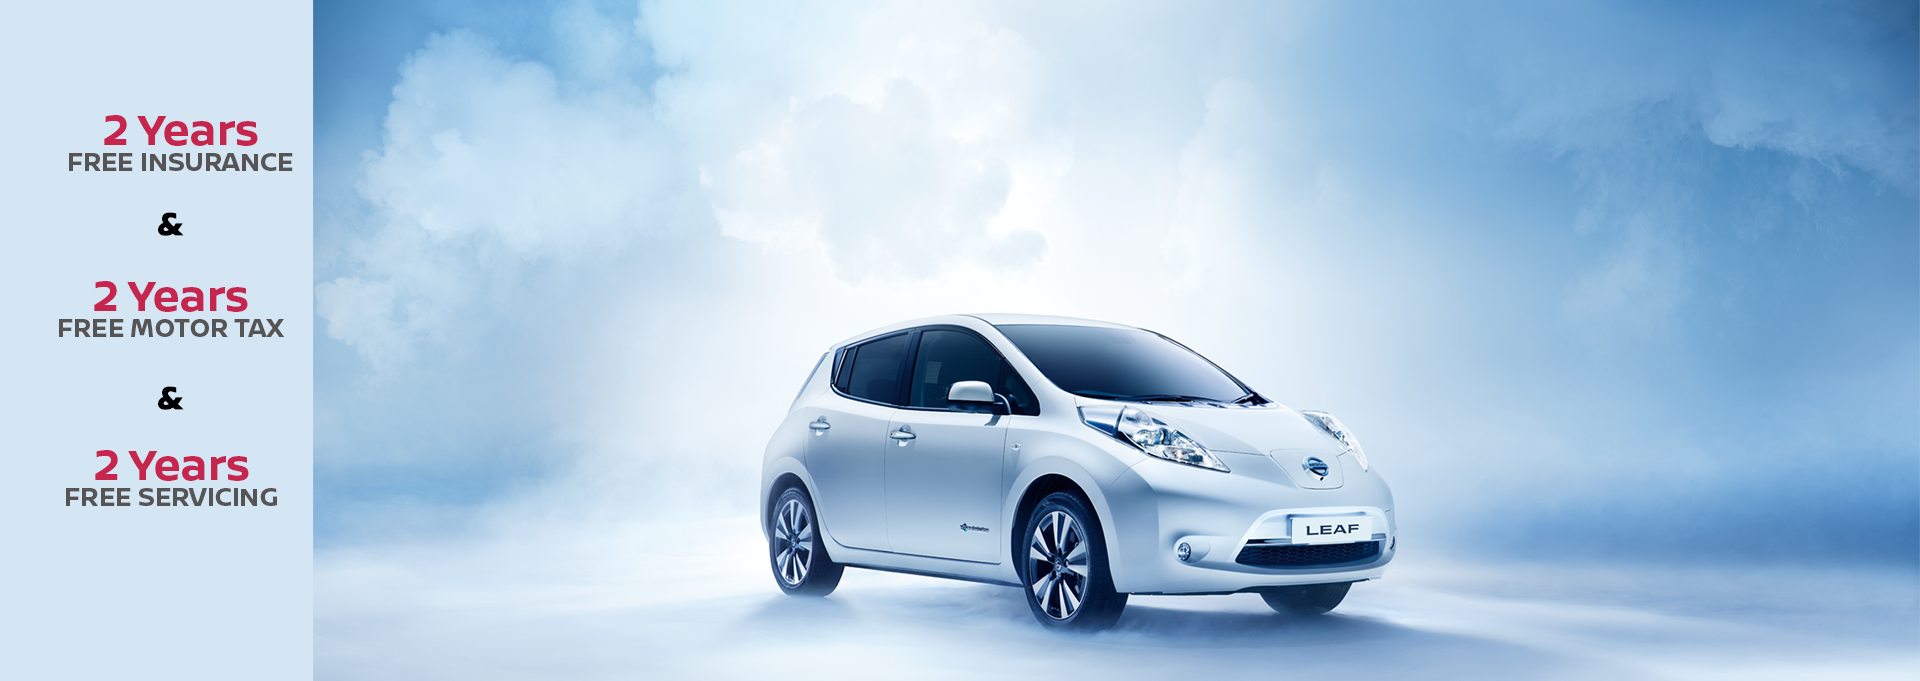 Drive a Leaf for Free